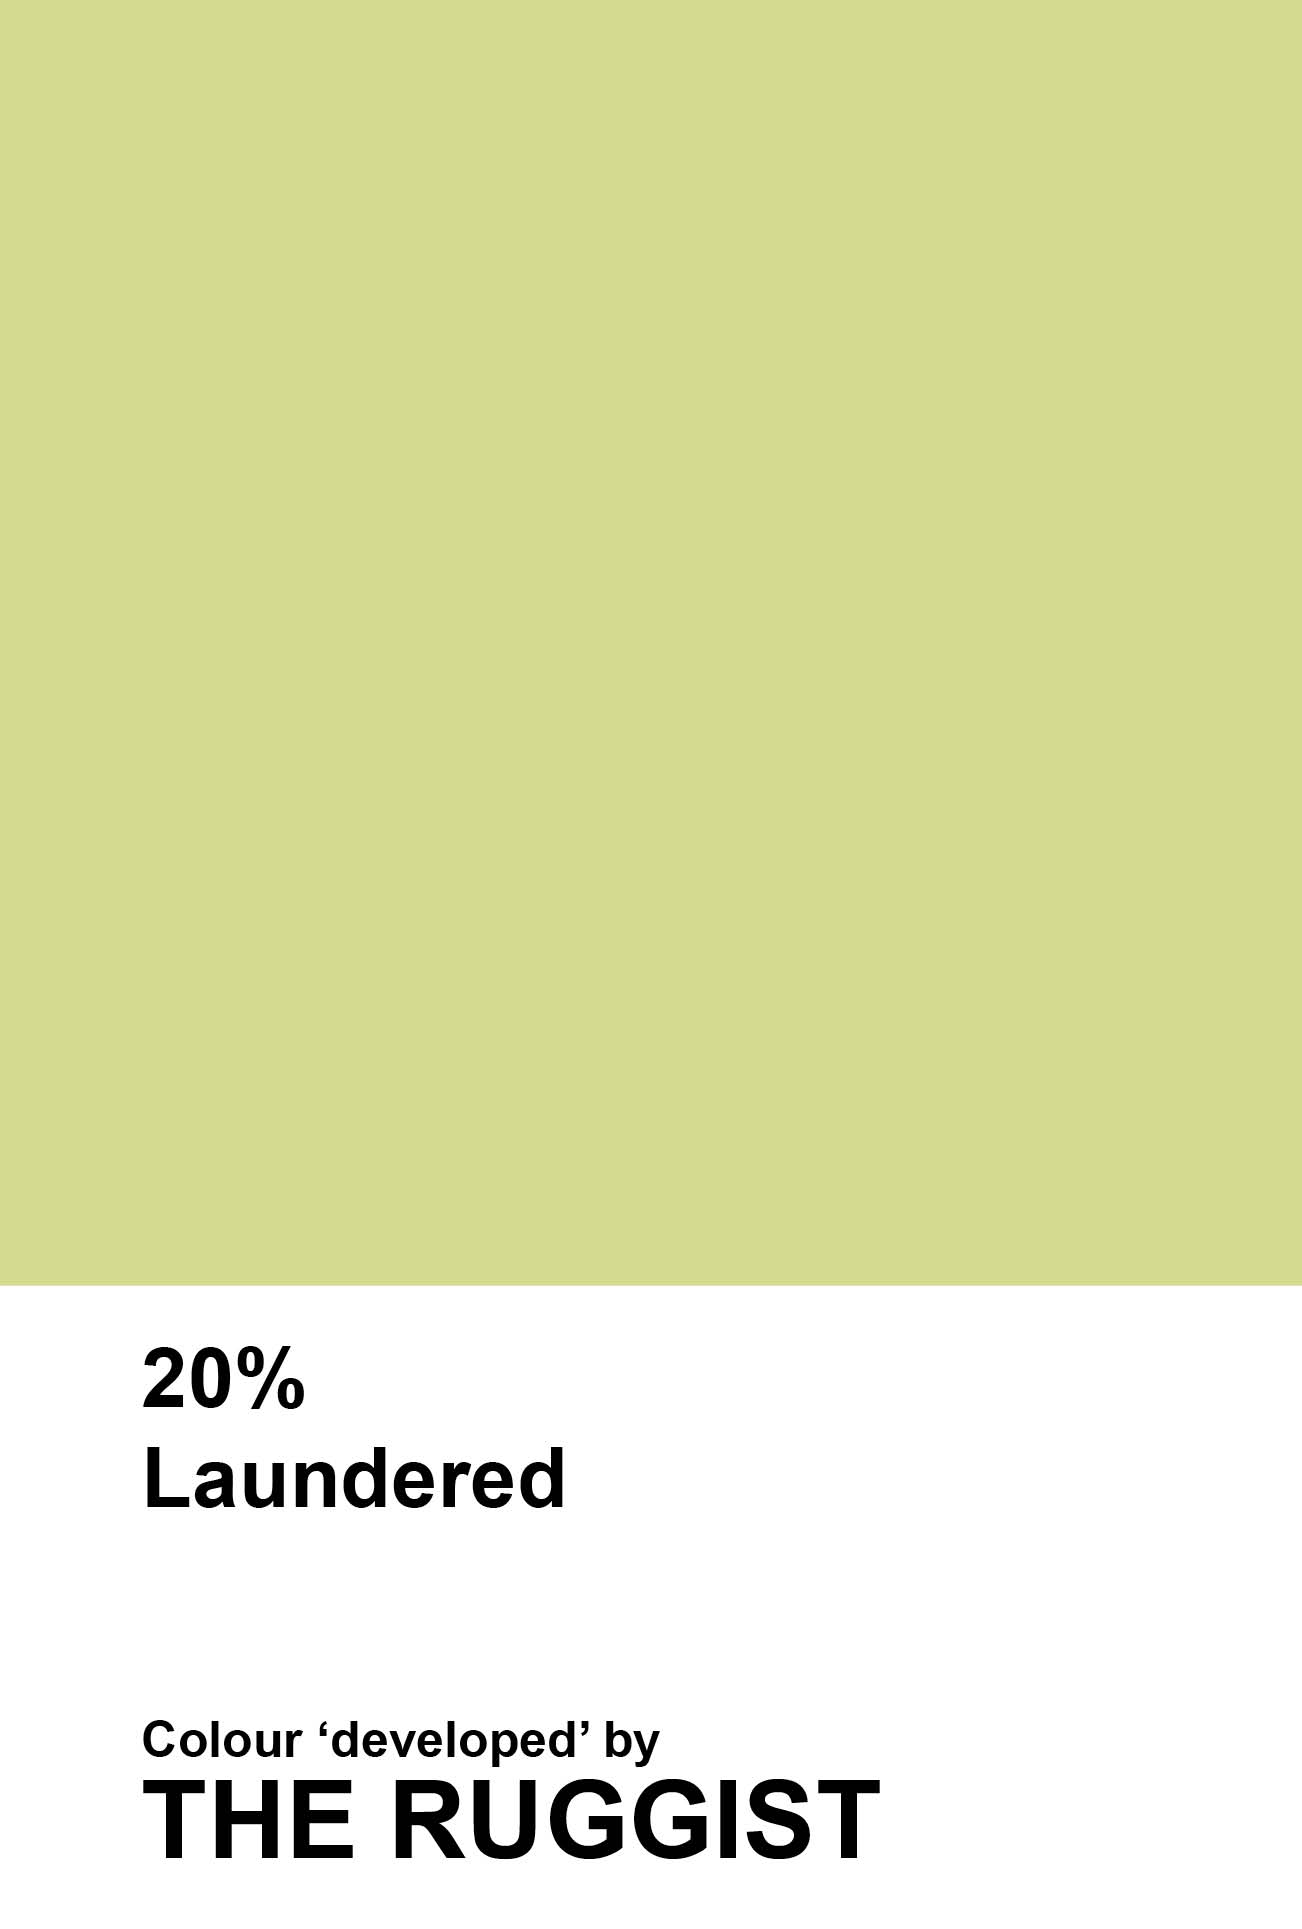 'Laundered' colour reference as 'developed' by The Ruggist. | Image by The Ruggist.